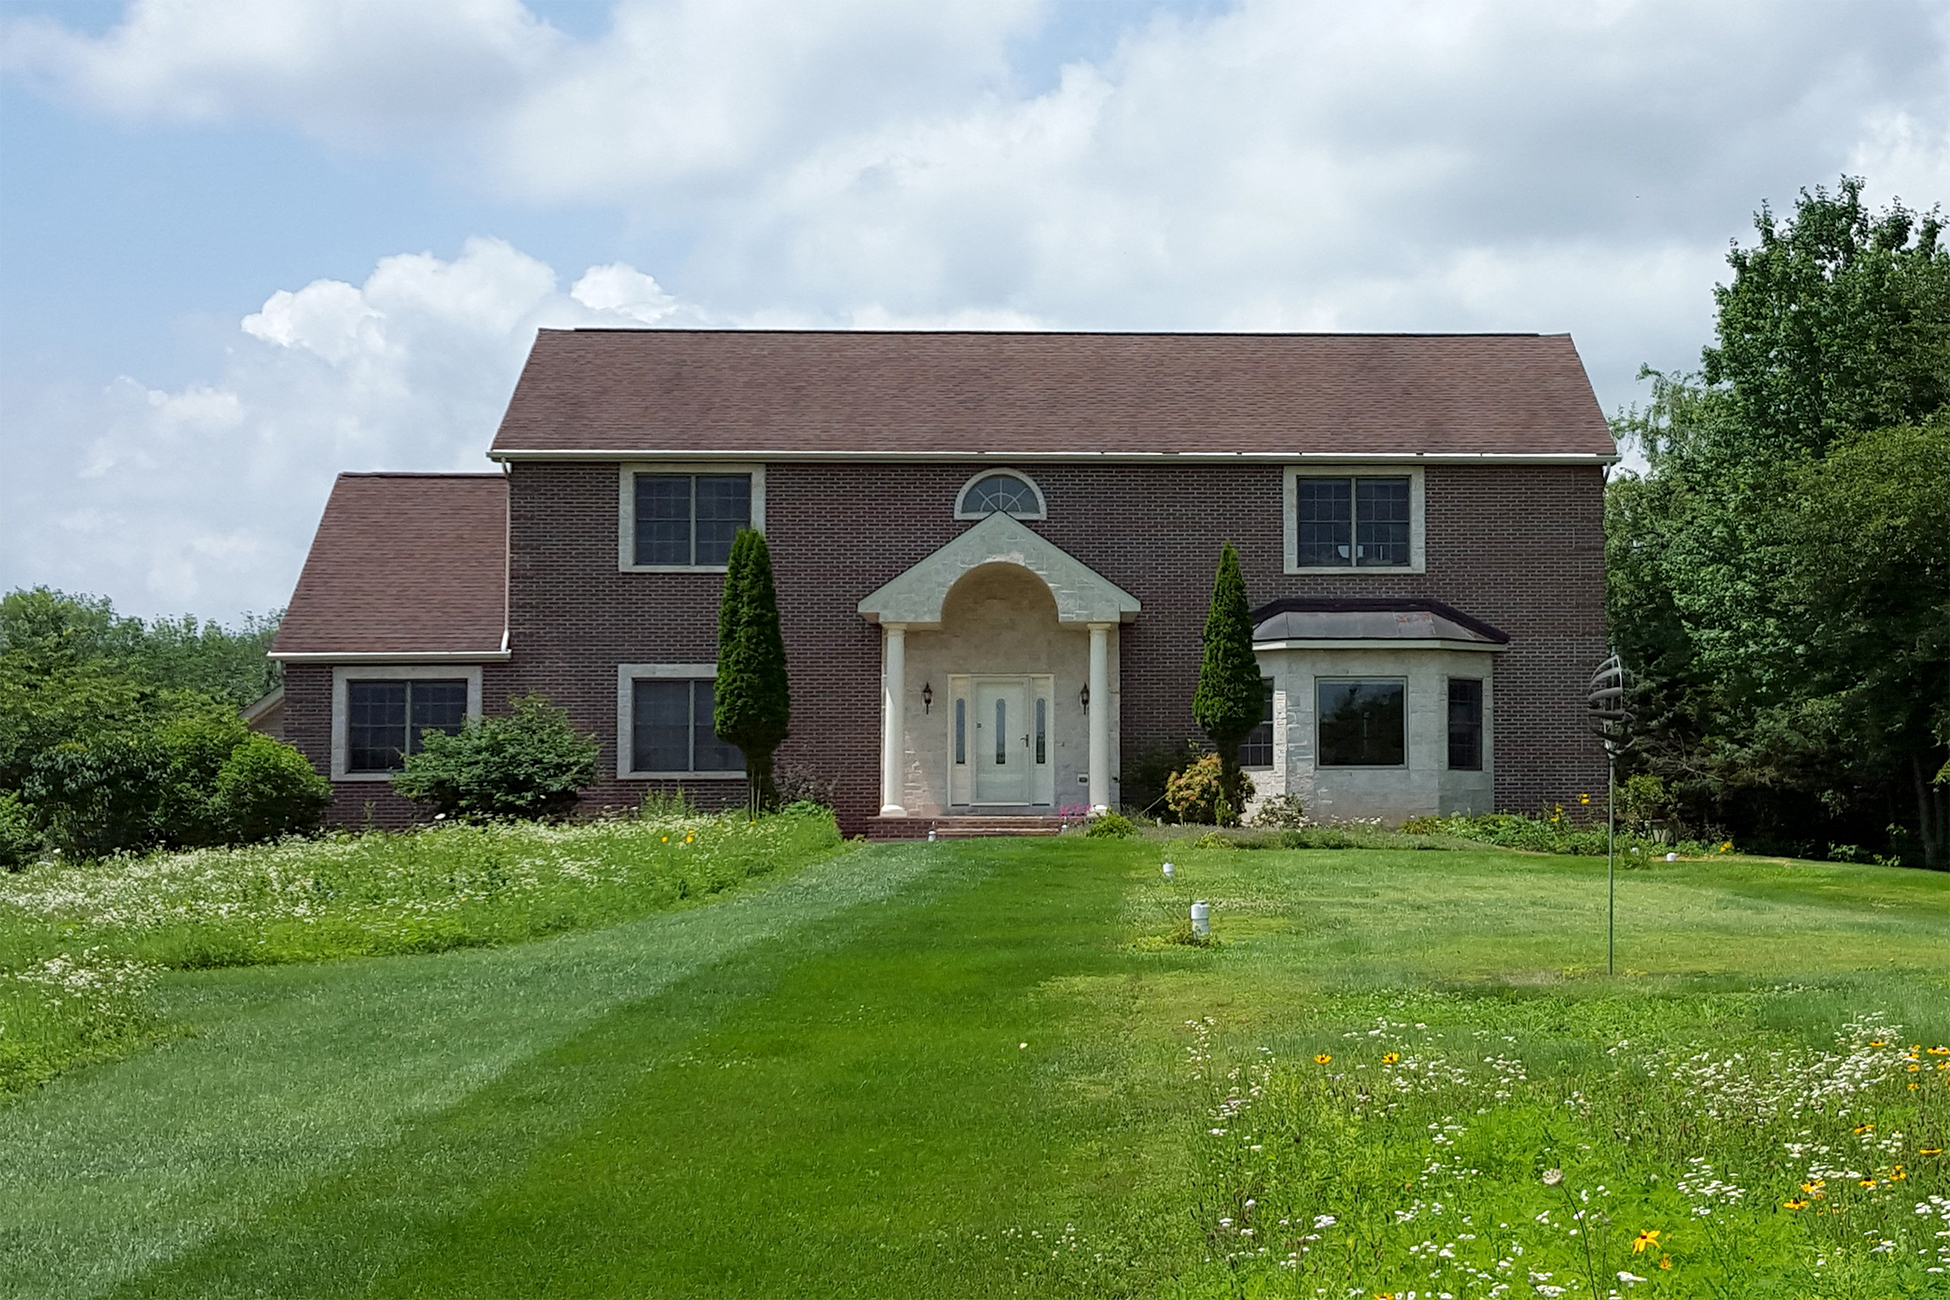 Property For Sale at Elegant and Energy-Efficient on 6+ Idyllic Acres - Montgomery Township